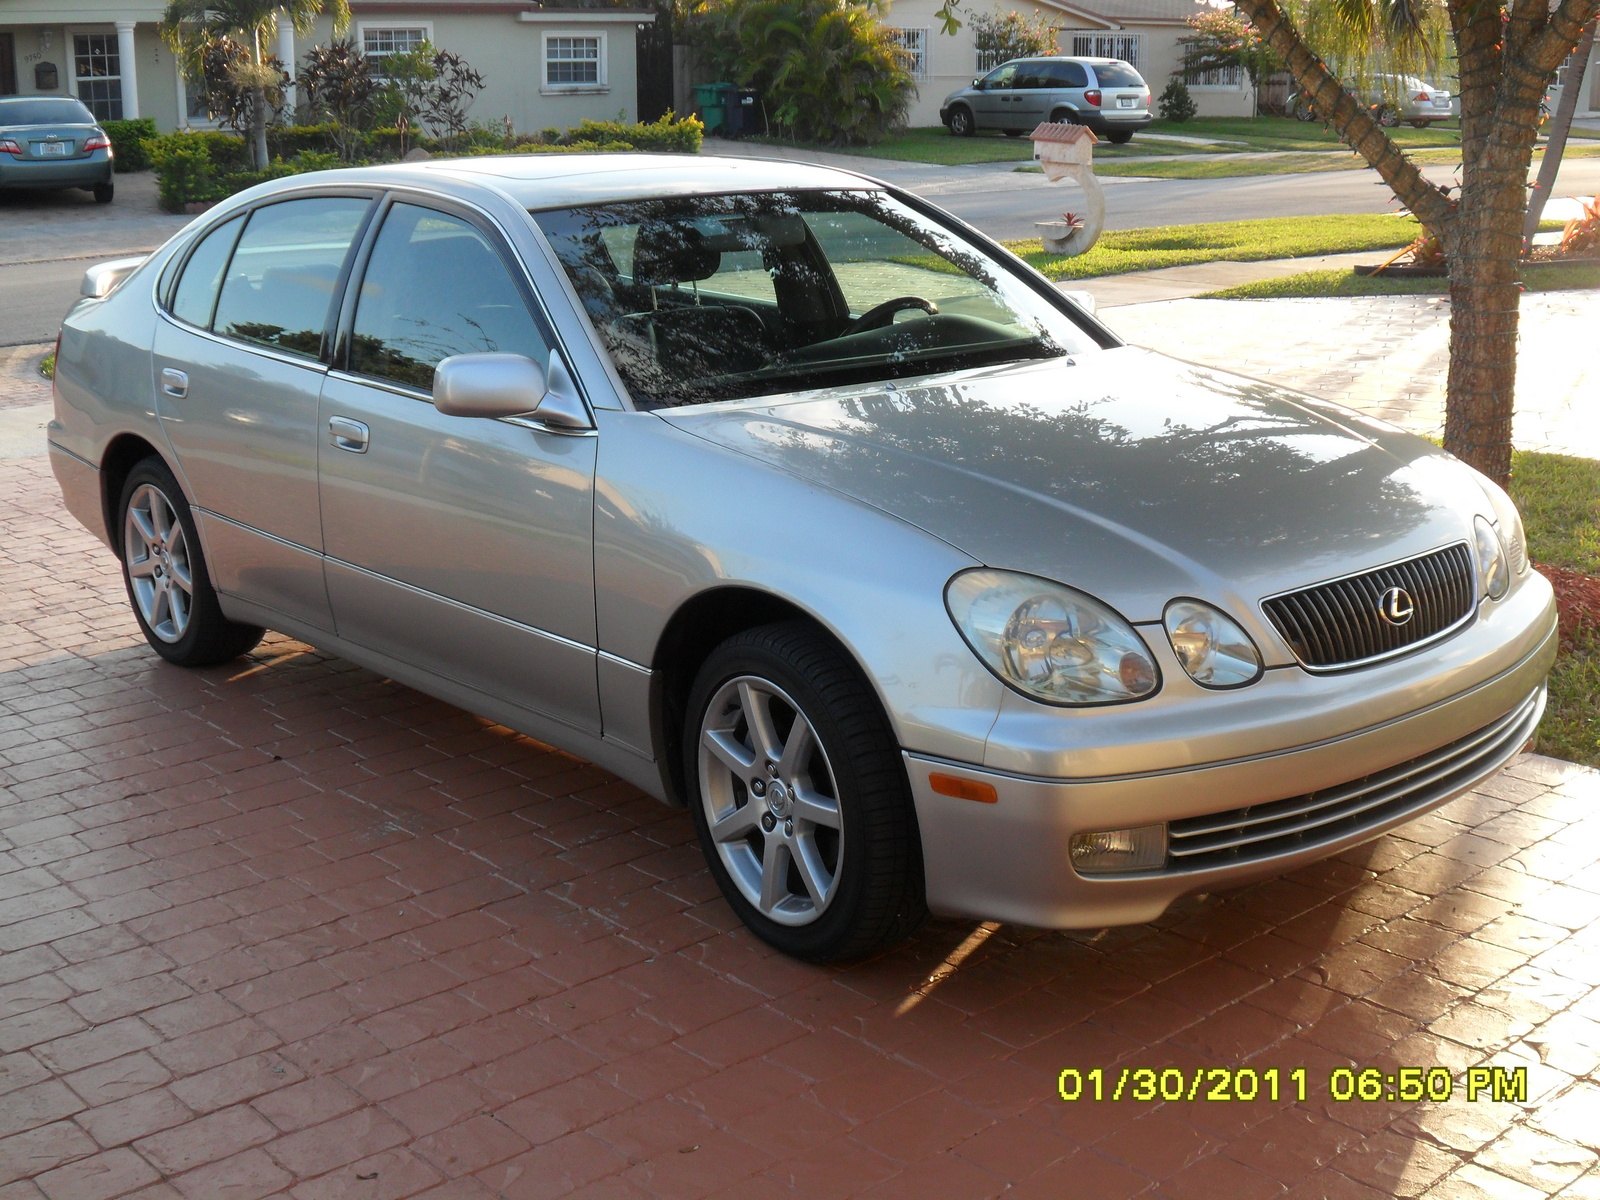 Picture of 2003 Lexus GS 430 4 Dr STD Sedan